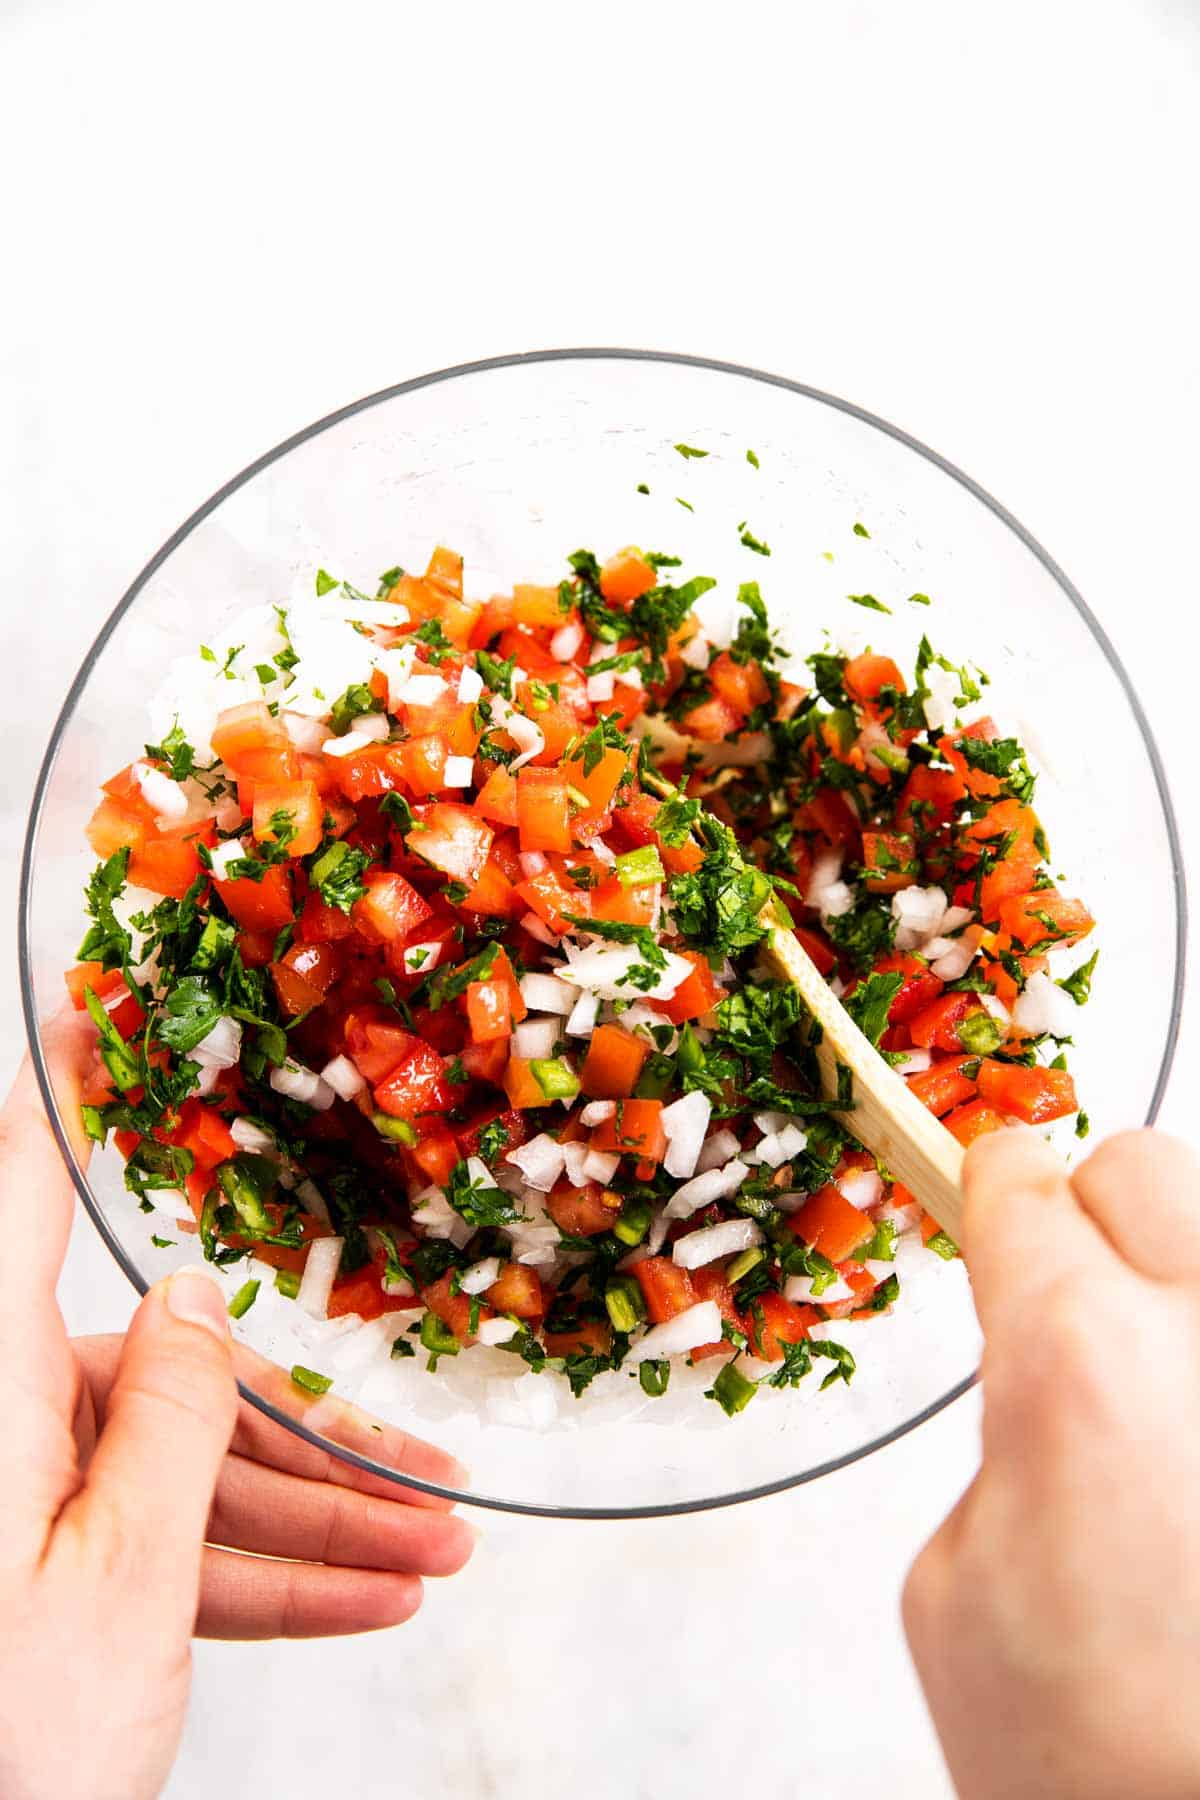 hands stirring pico de Gallo in glass bowl with wooden spoon